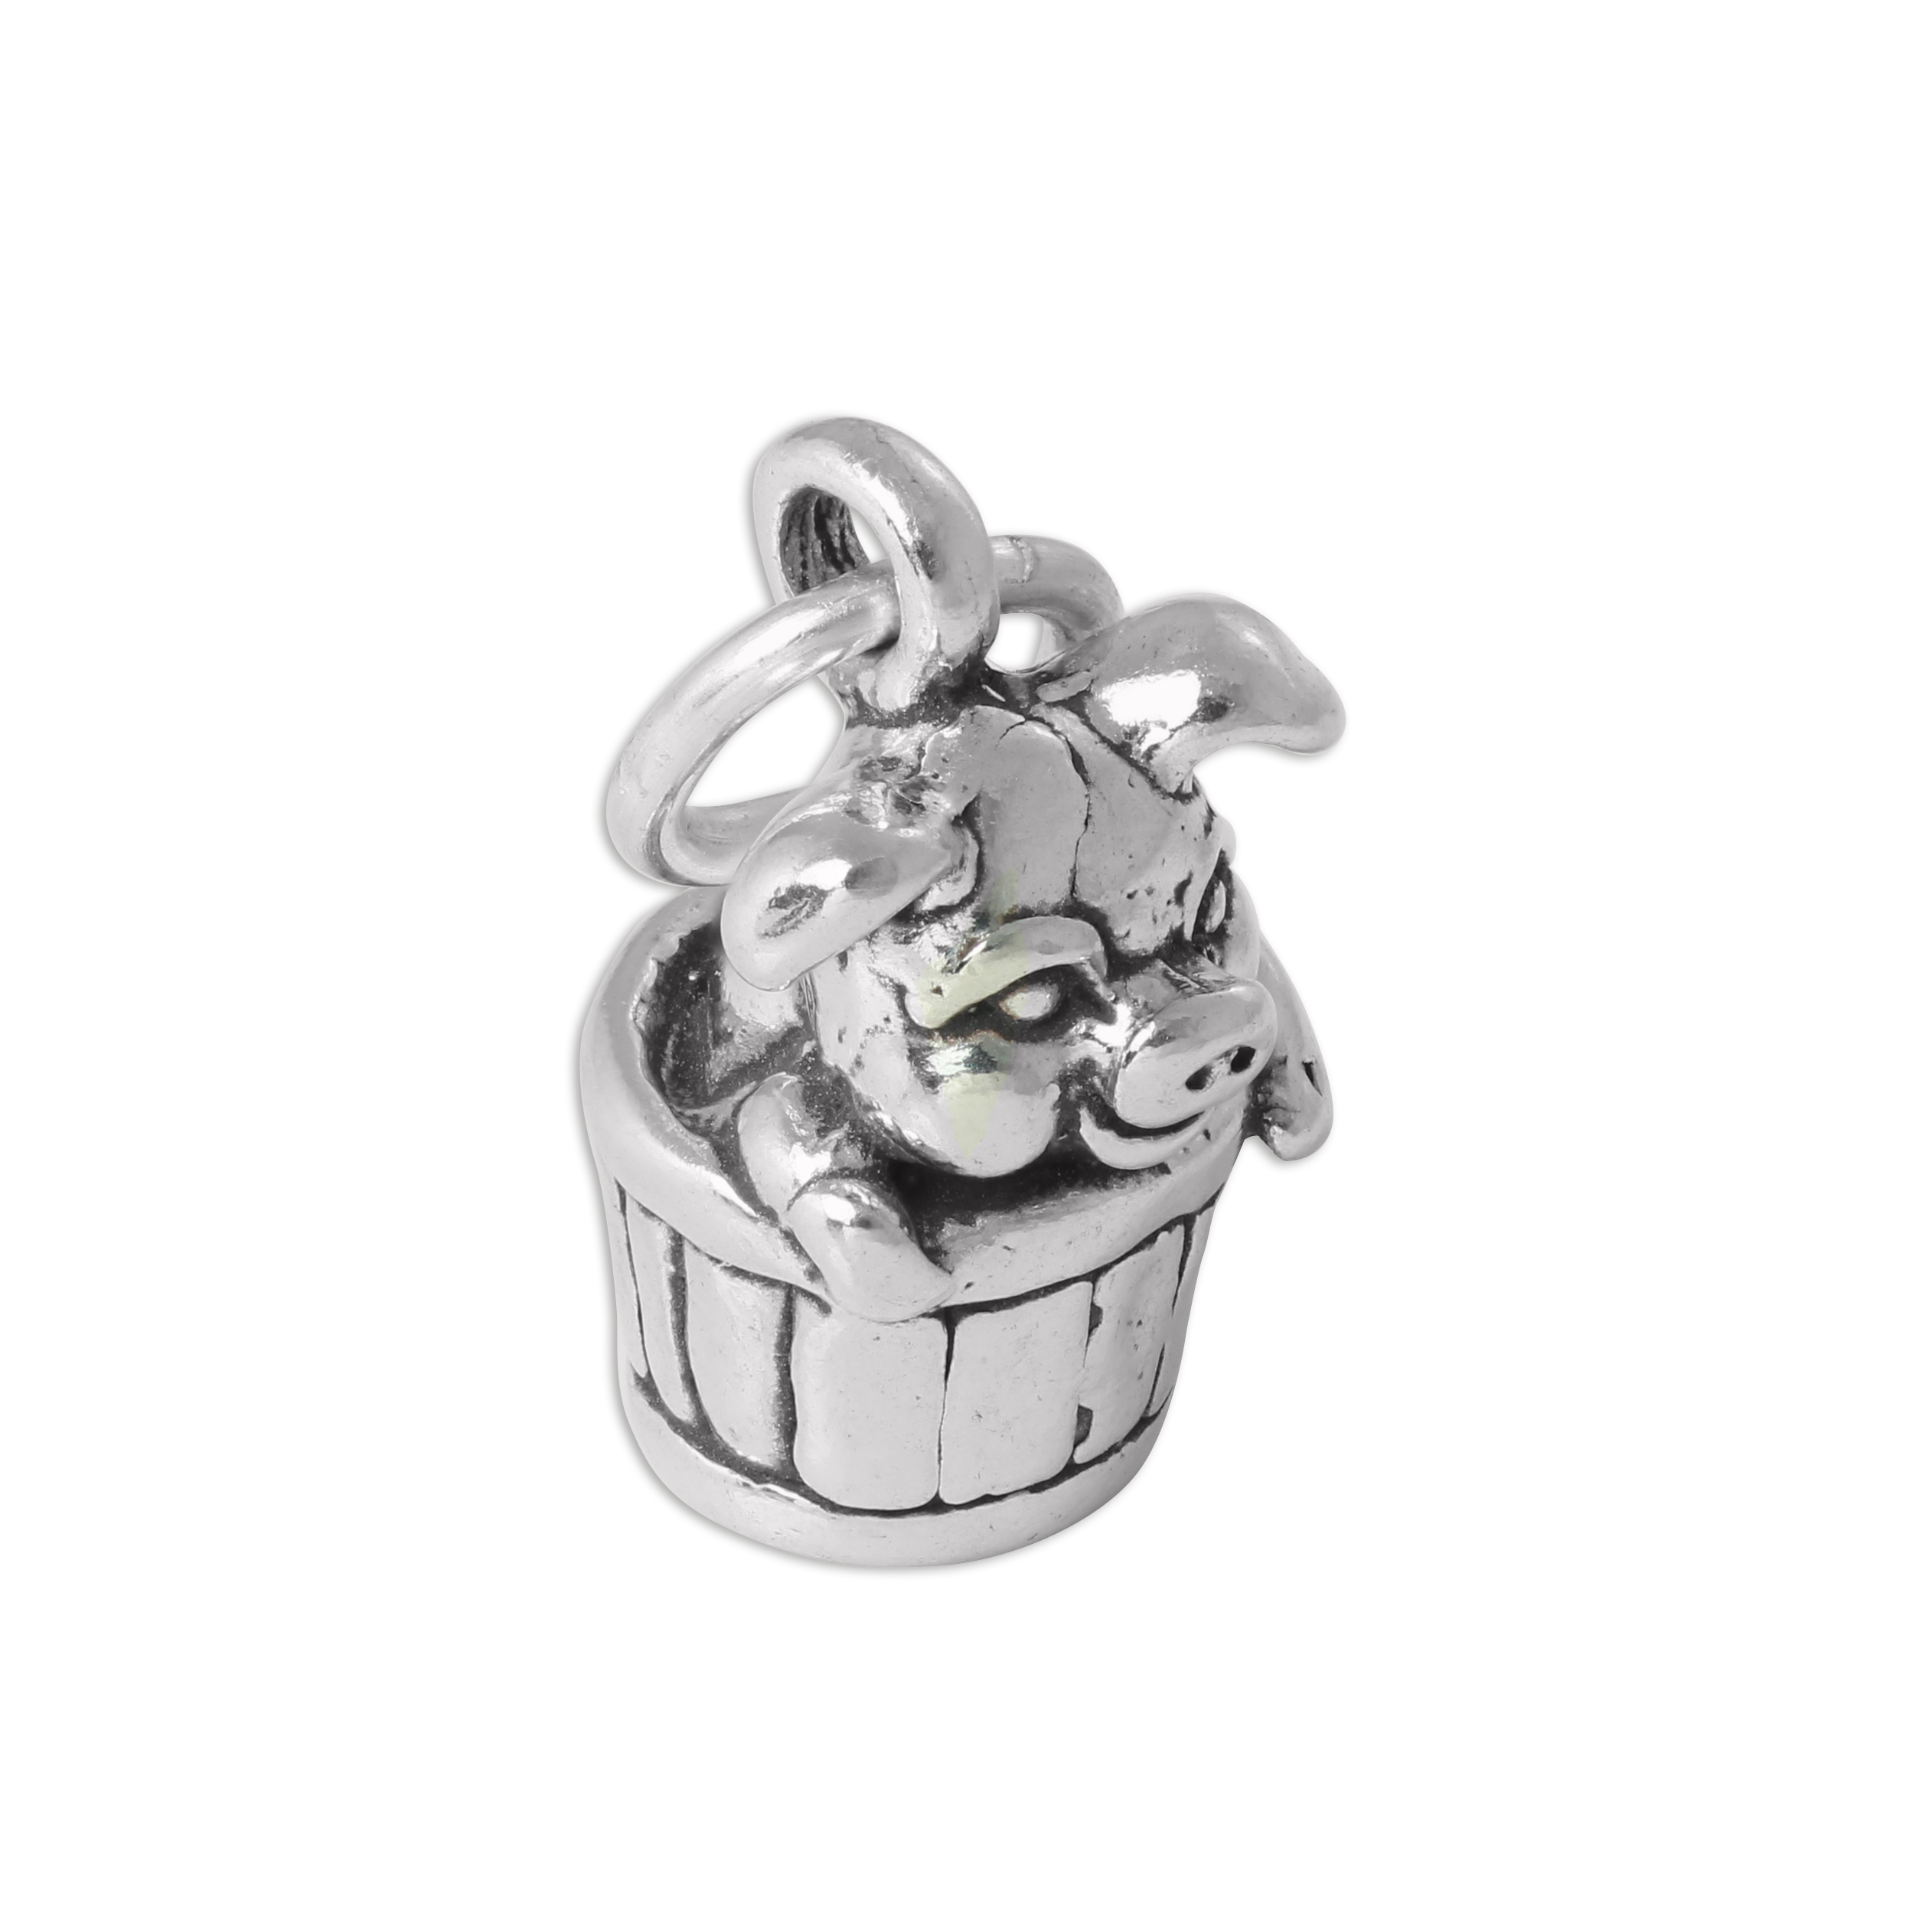 An image of Sterling Silver 3D Pig in Barrel Charm